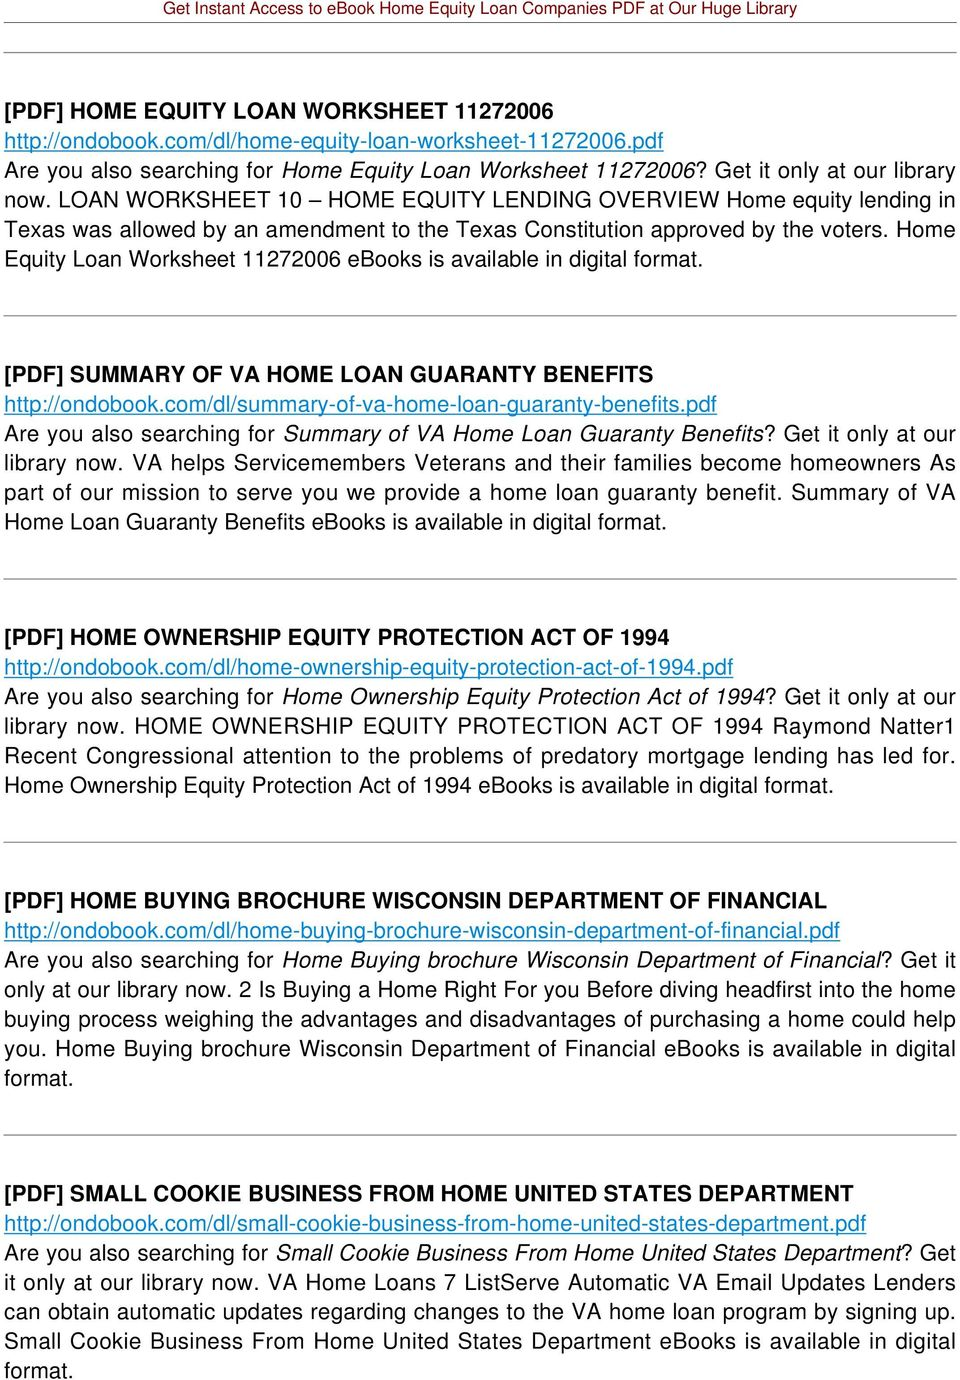 Home Equity Loan Worksheet 11272006 ebooks is available in digital [PDF] SUMMARY OF VA HOME LOAN GUARANTY BENEFITS http://ondobook.com/dl/summary-of-va-home-loan-guaranty-benefits.